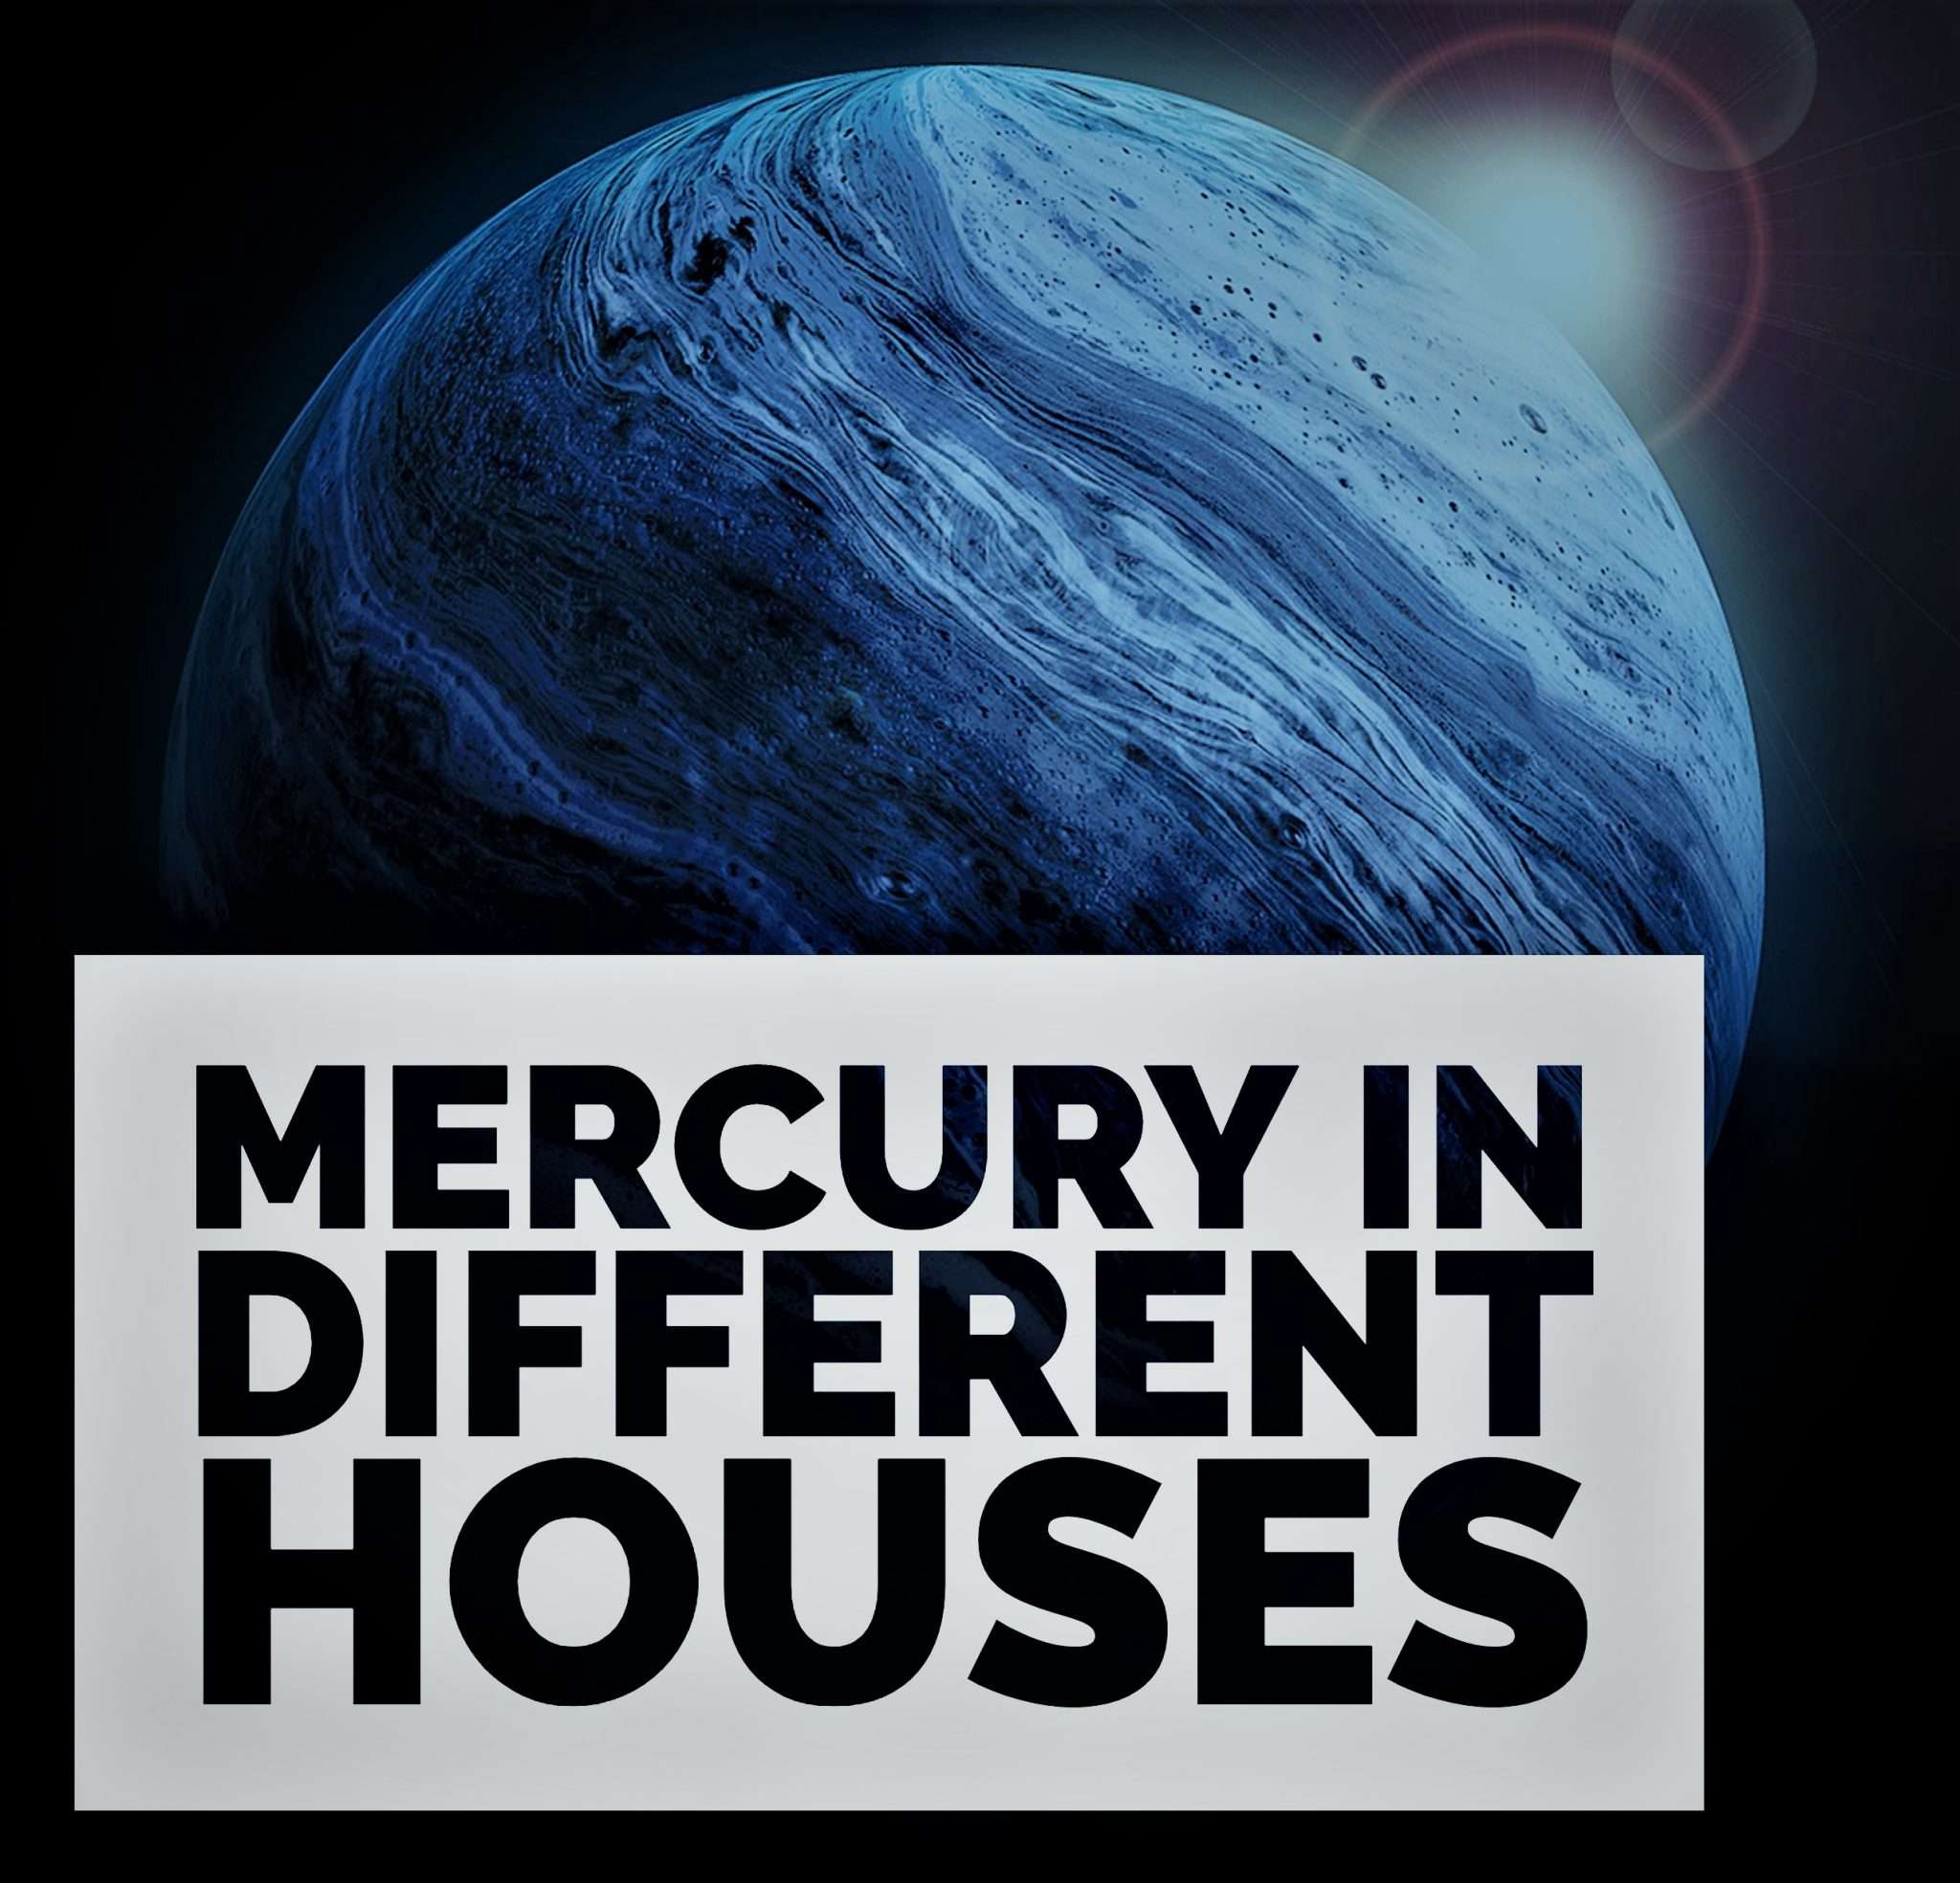 Mercury in Different Houses   Know About 1st to 12th Houses